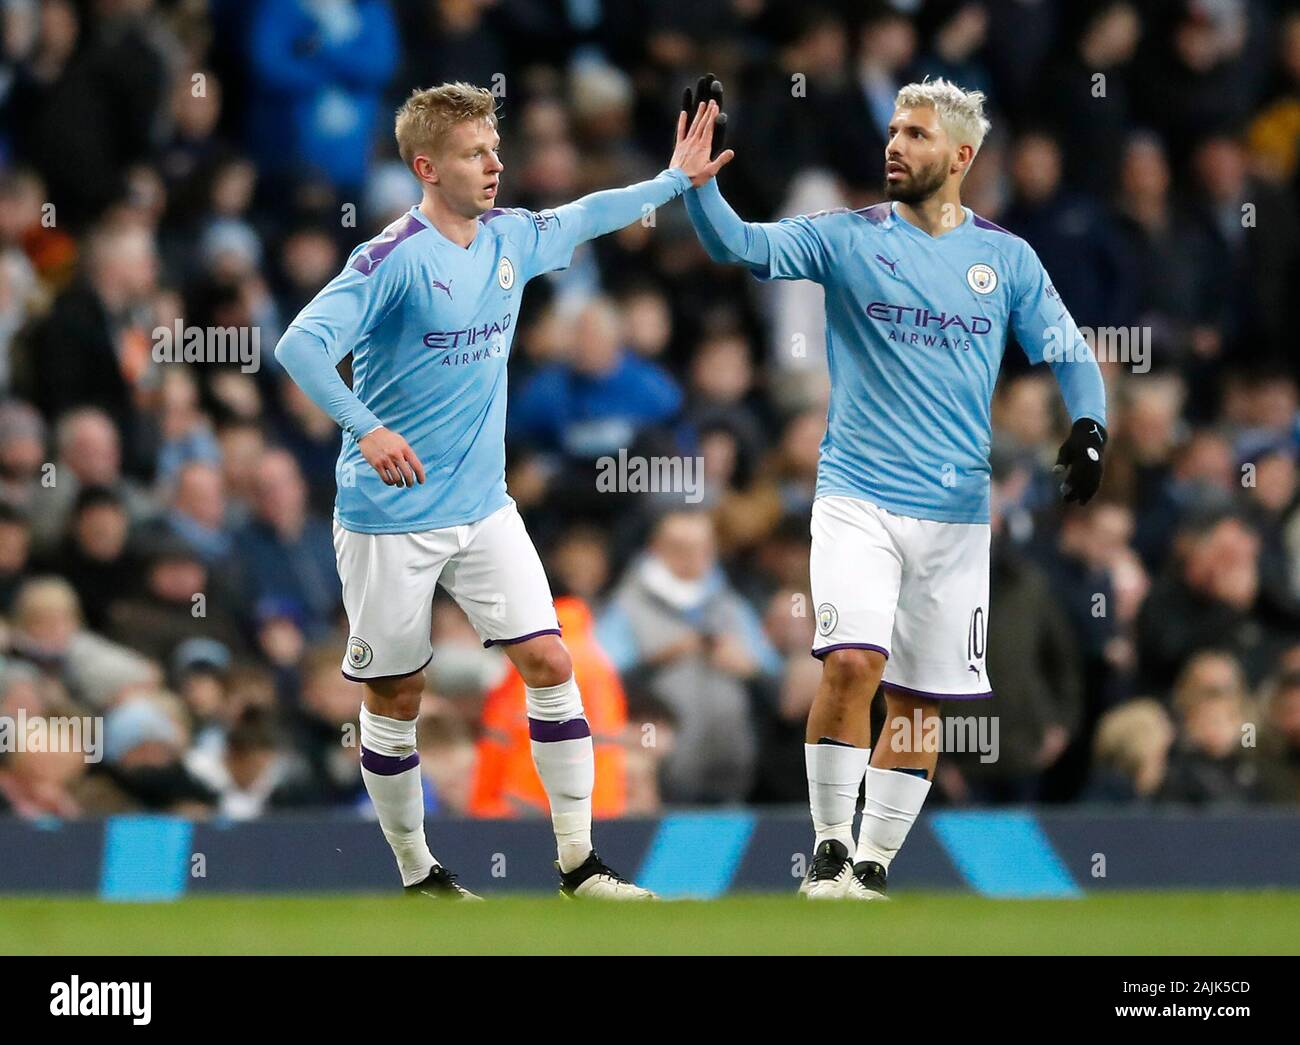 Manchester City's Oleksandr Zinchenko (left) celebrates scoring his side's  first goal of the game with team-mate Sergio Aguero during the FA Cup third  round match at the Etihad Stadium, Manchester Stock Photo -